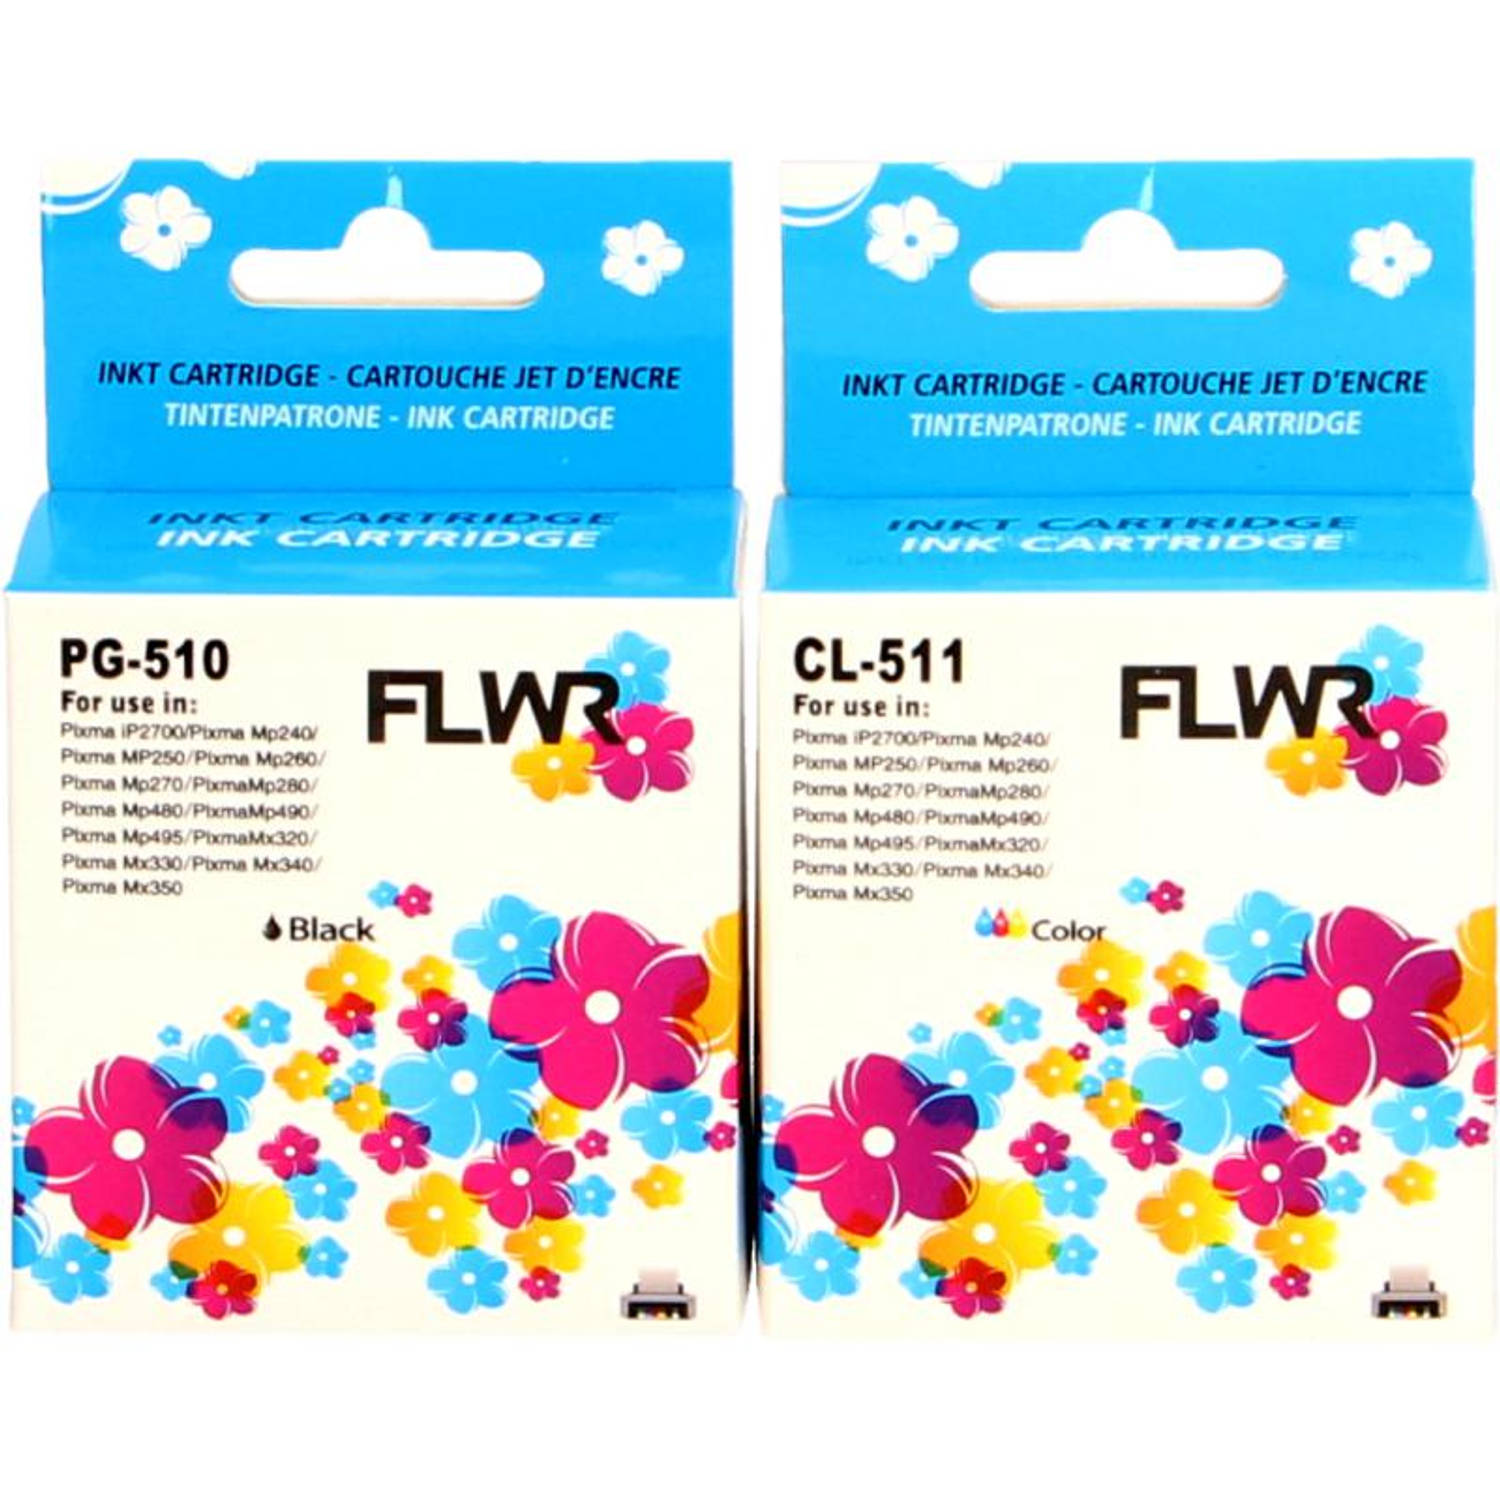 FLWR Canon PG-510/CL-511 Multipack Cartridge